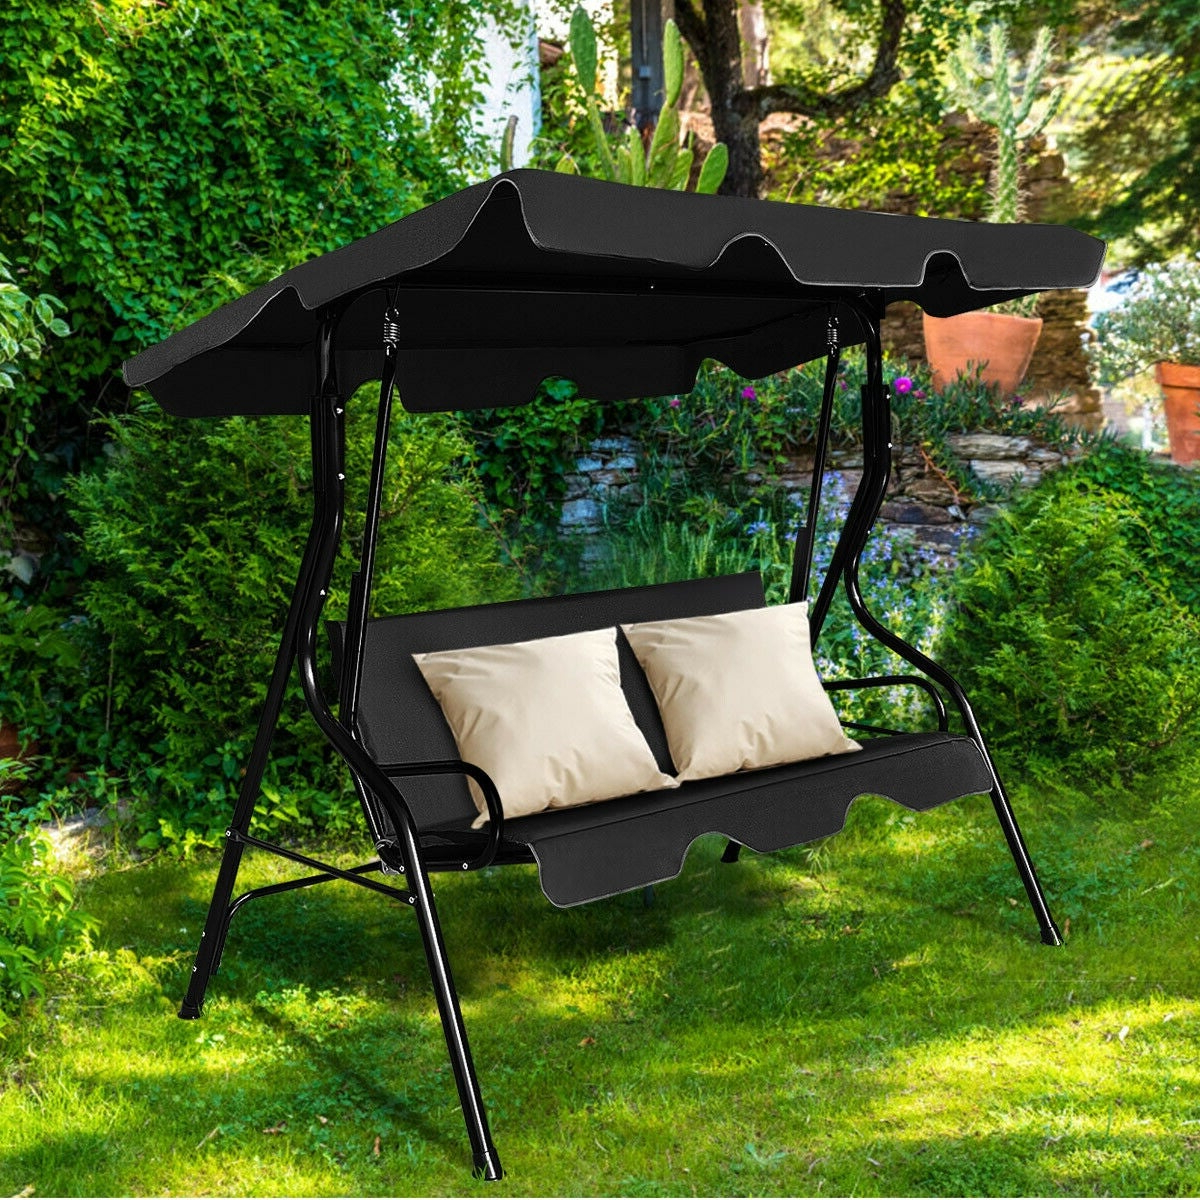 3 Seats Patio Canopy Swing Gliders Hammock Cushioned Steel Frame For Famous Costway 3 Seats Patio Canopy Swing Glider Hammock Cushioned Steel Frame Backyar Black (Gallery 2 of 25)